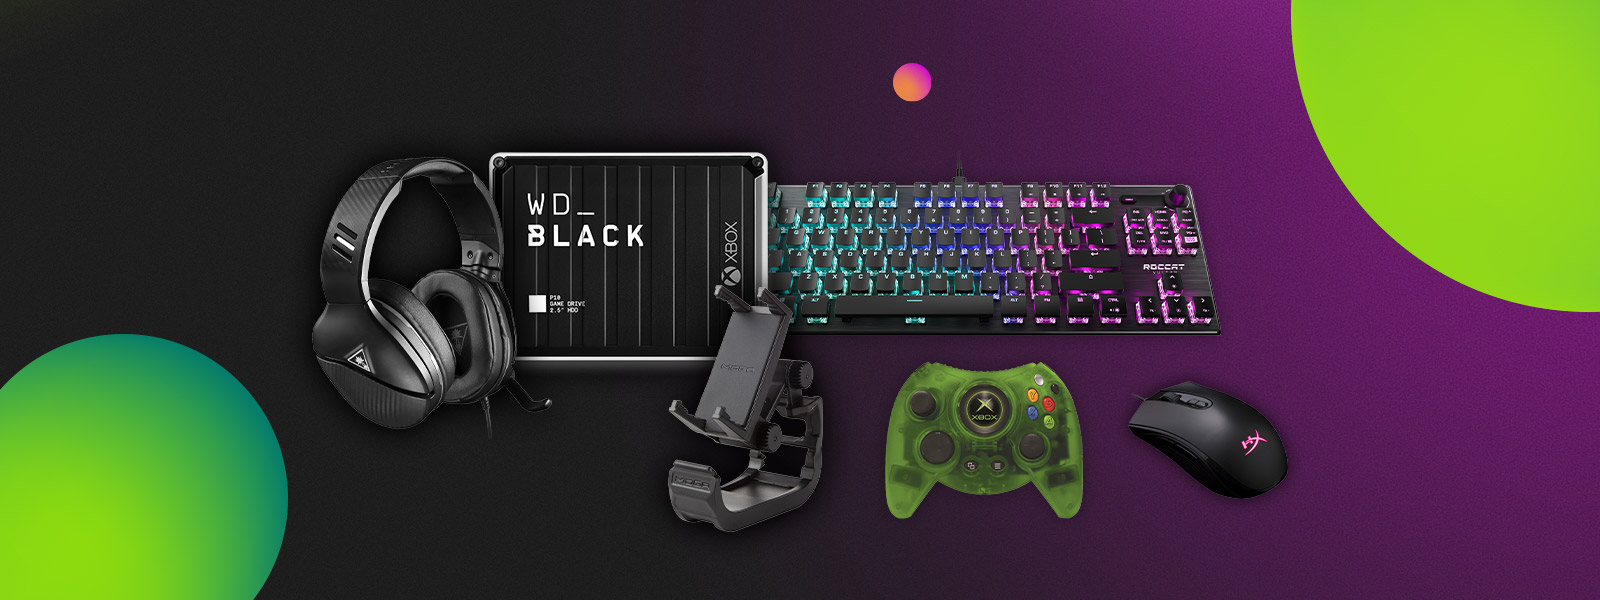 A collection of gaming accessories, including a keyboard, a gaming headset, and an Xbox controller.